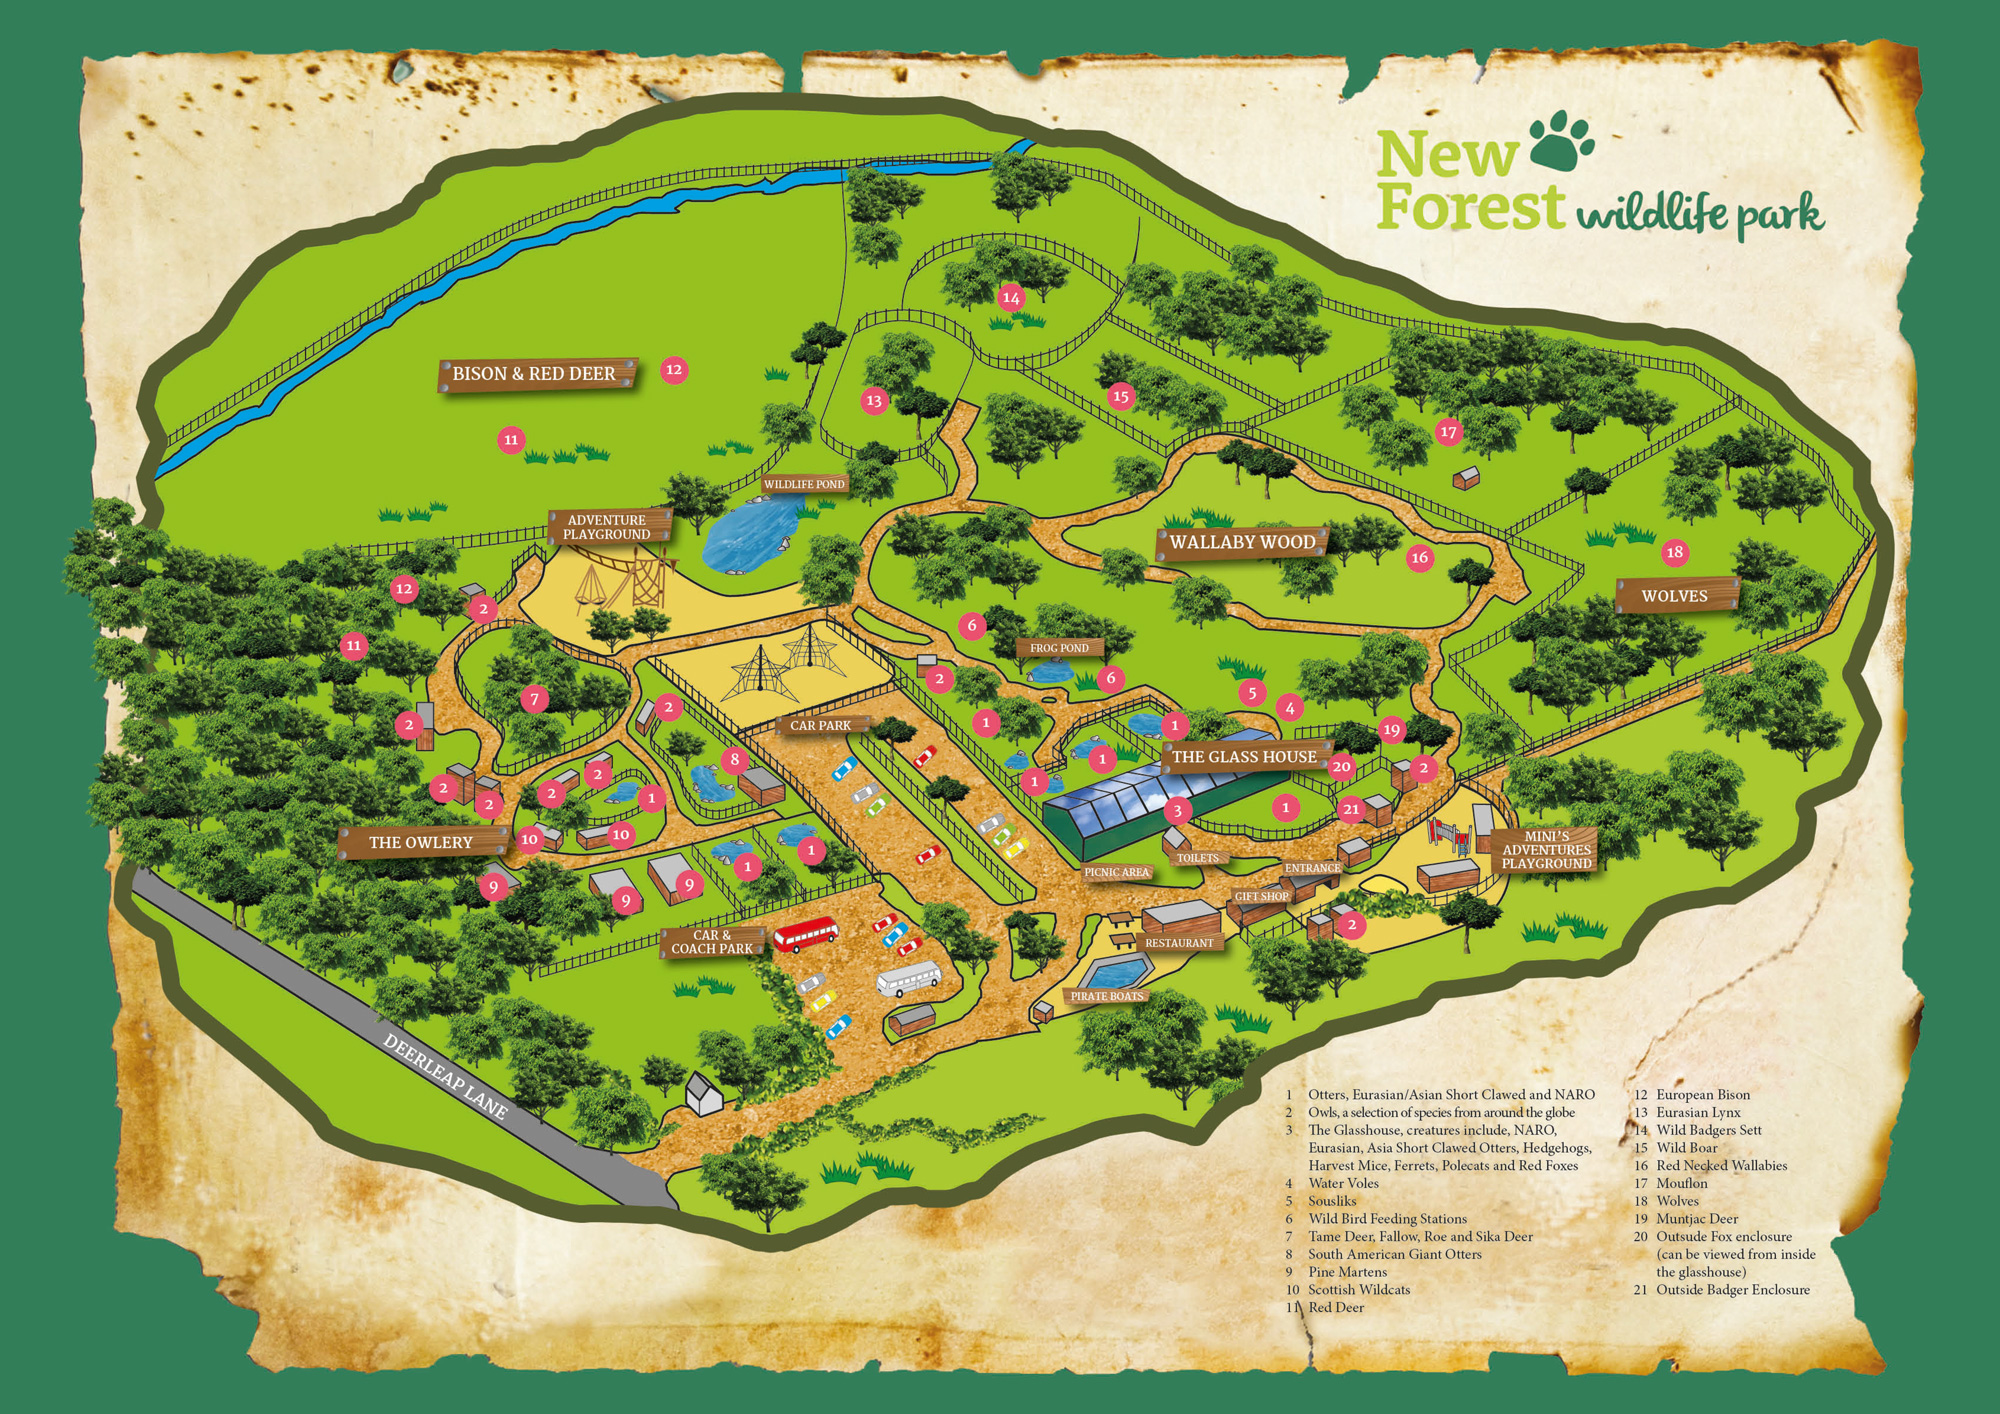 The Park Map | New Forest Wildlife Park Map Of New Hampshire England on europe england map, peterborough england map, france england map, albany england map, dorchester england map, new hampshire help, easton england map, rye england map, new england new hampshire, barnet england map, greenwich england map, birmingham england map, richmond england map, gloucester england map, plymouth england map, malaysia england map, bedford england map, wentworth england map, norfolk england map, new yorkshire england map,